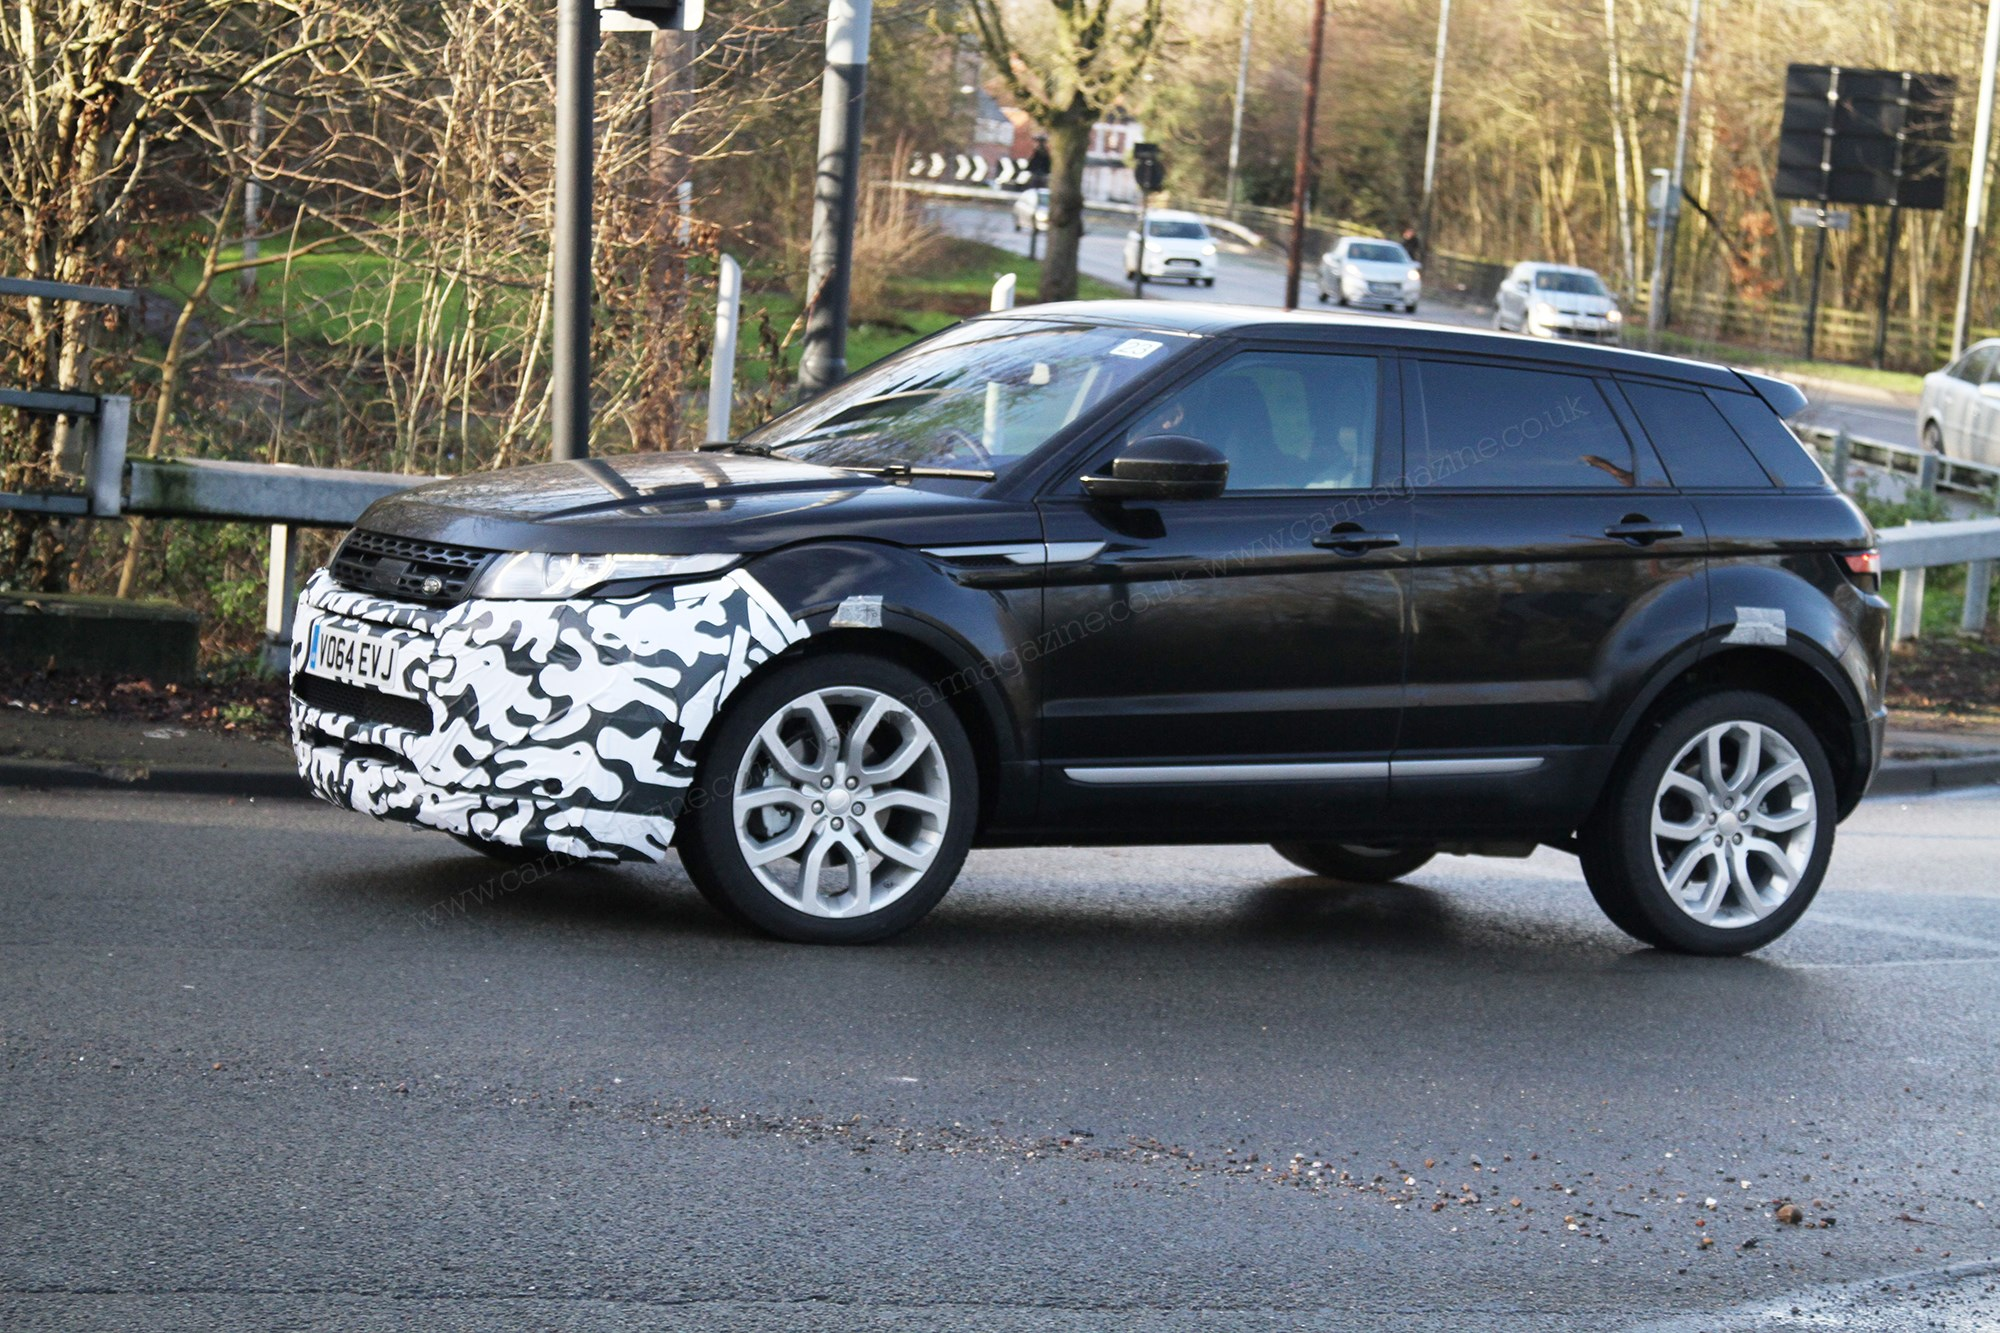 2015 Land Rover Range Rover Evoque Oil Reset ✓ Land Rover Car